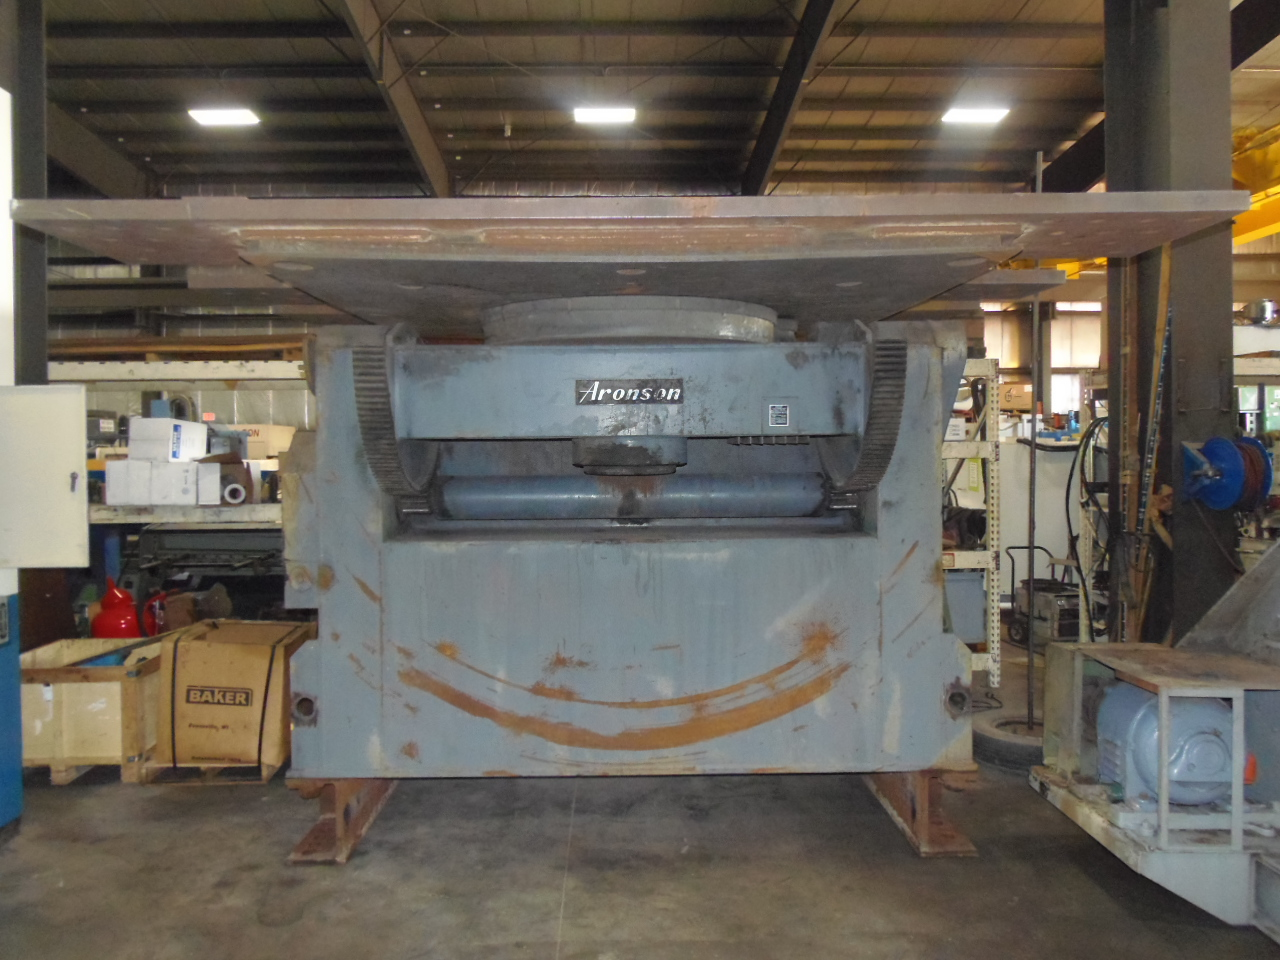 60,000 LB. ARONSON WELDING POSITIONER, G600CS, 135 DEG. TILT, 360 DEG. ROTATE, 8' x 8' TABLE